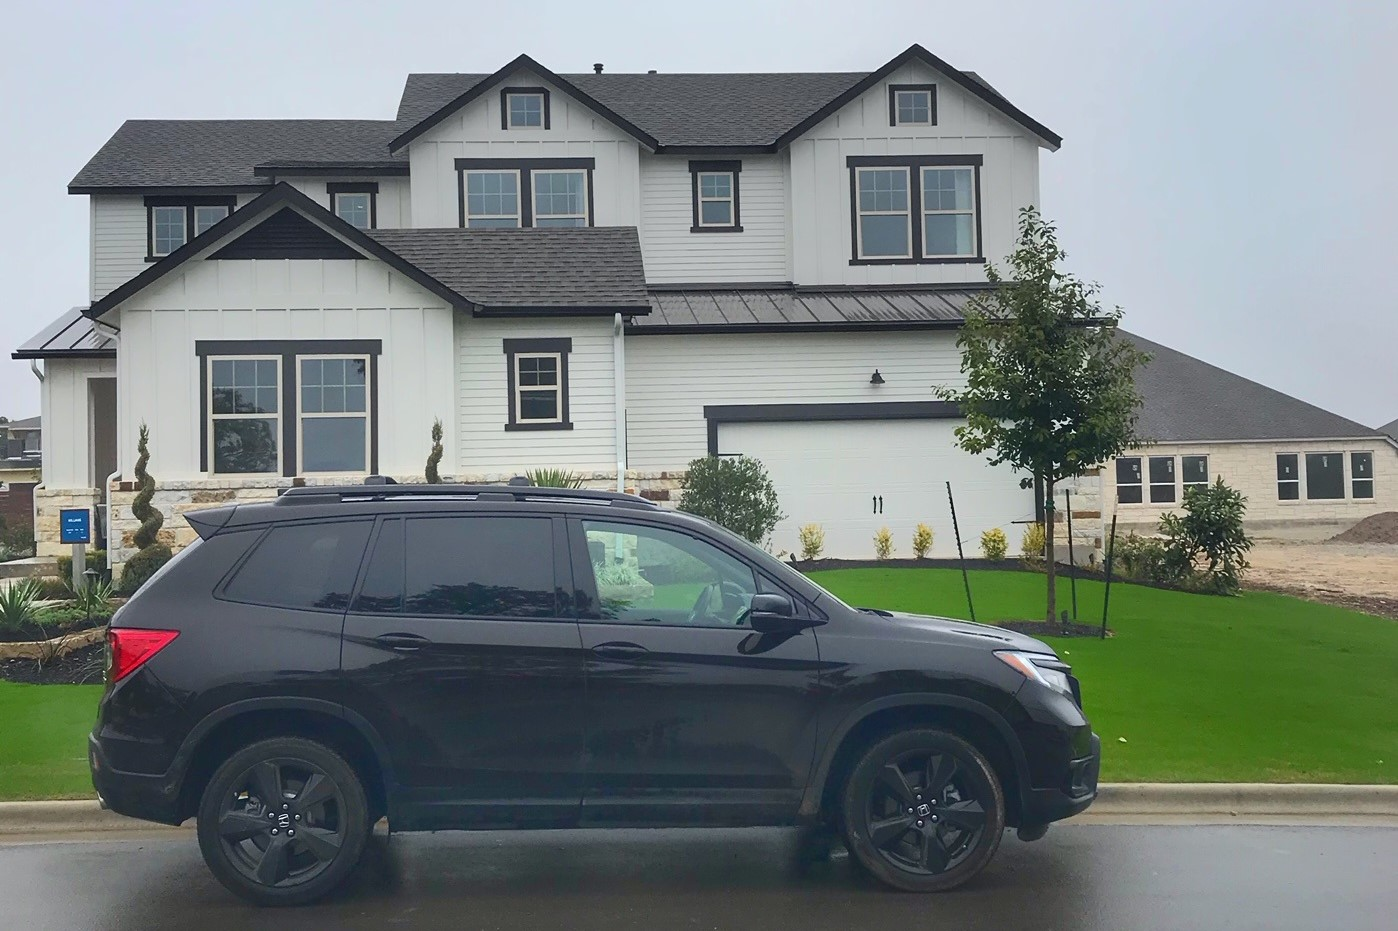 Honda Passport, one of the best family road trip vehicles